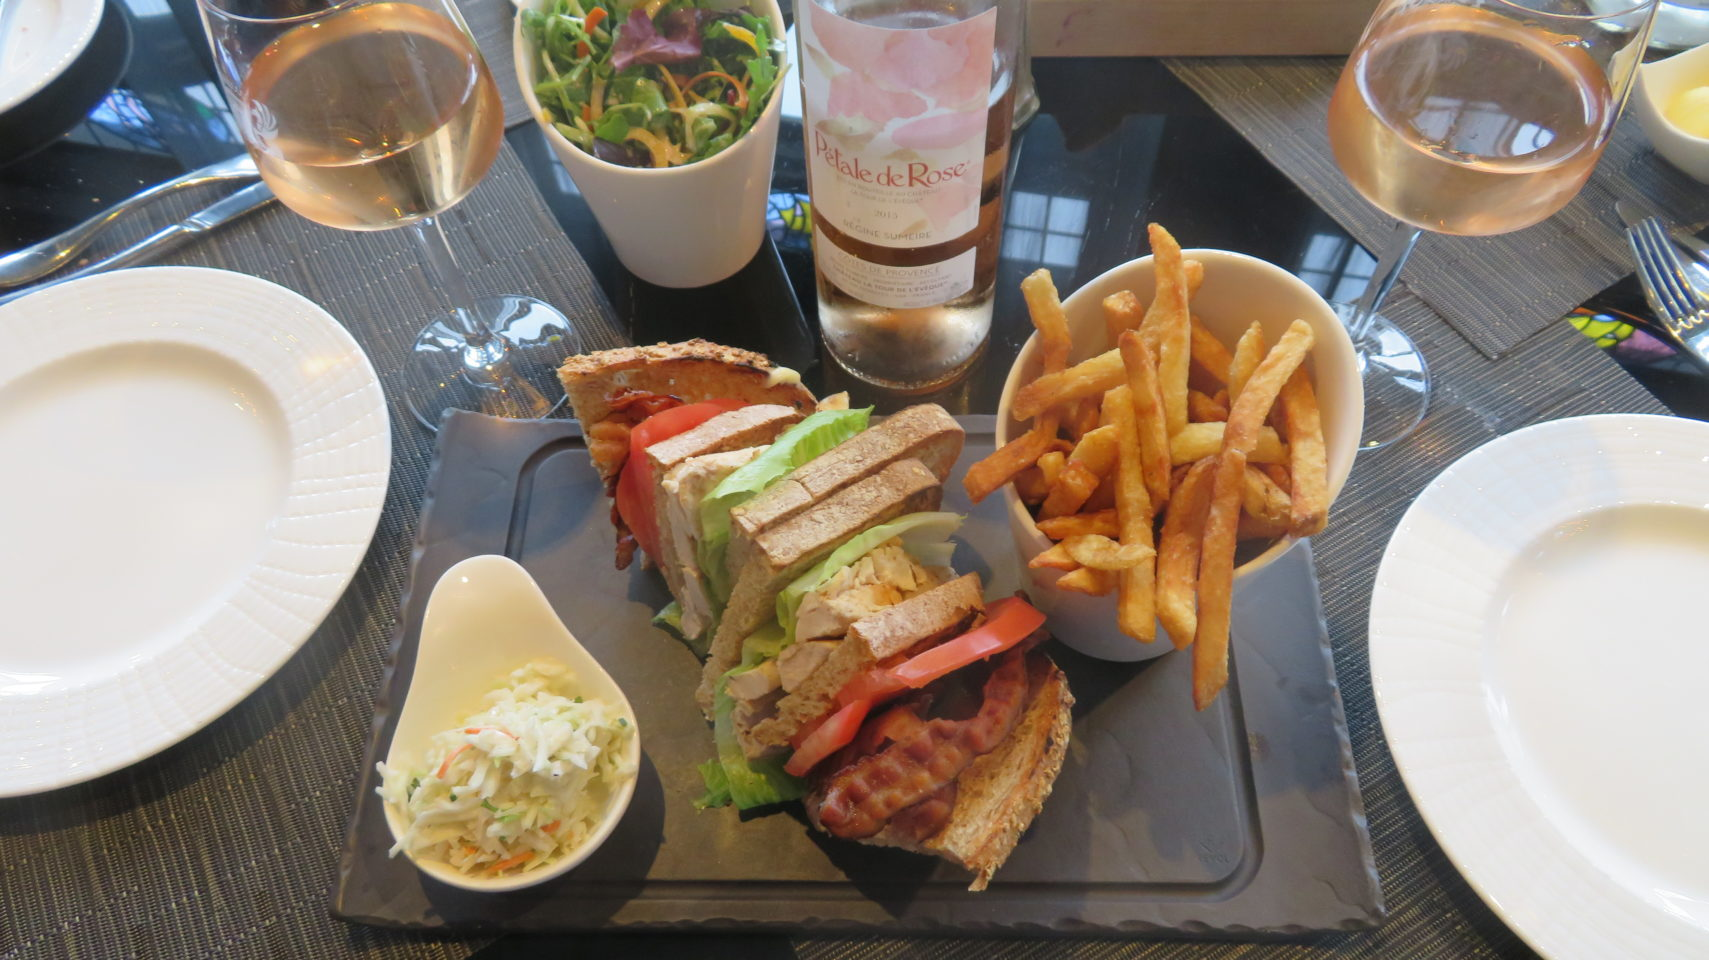 A quick lunch at the Bistro Le Sam of the Fairmont Le Chateau Frontenac